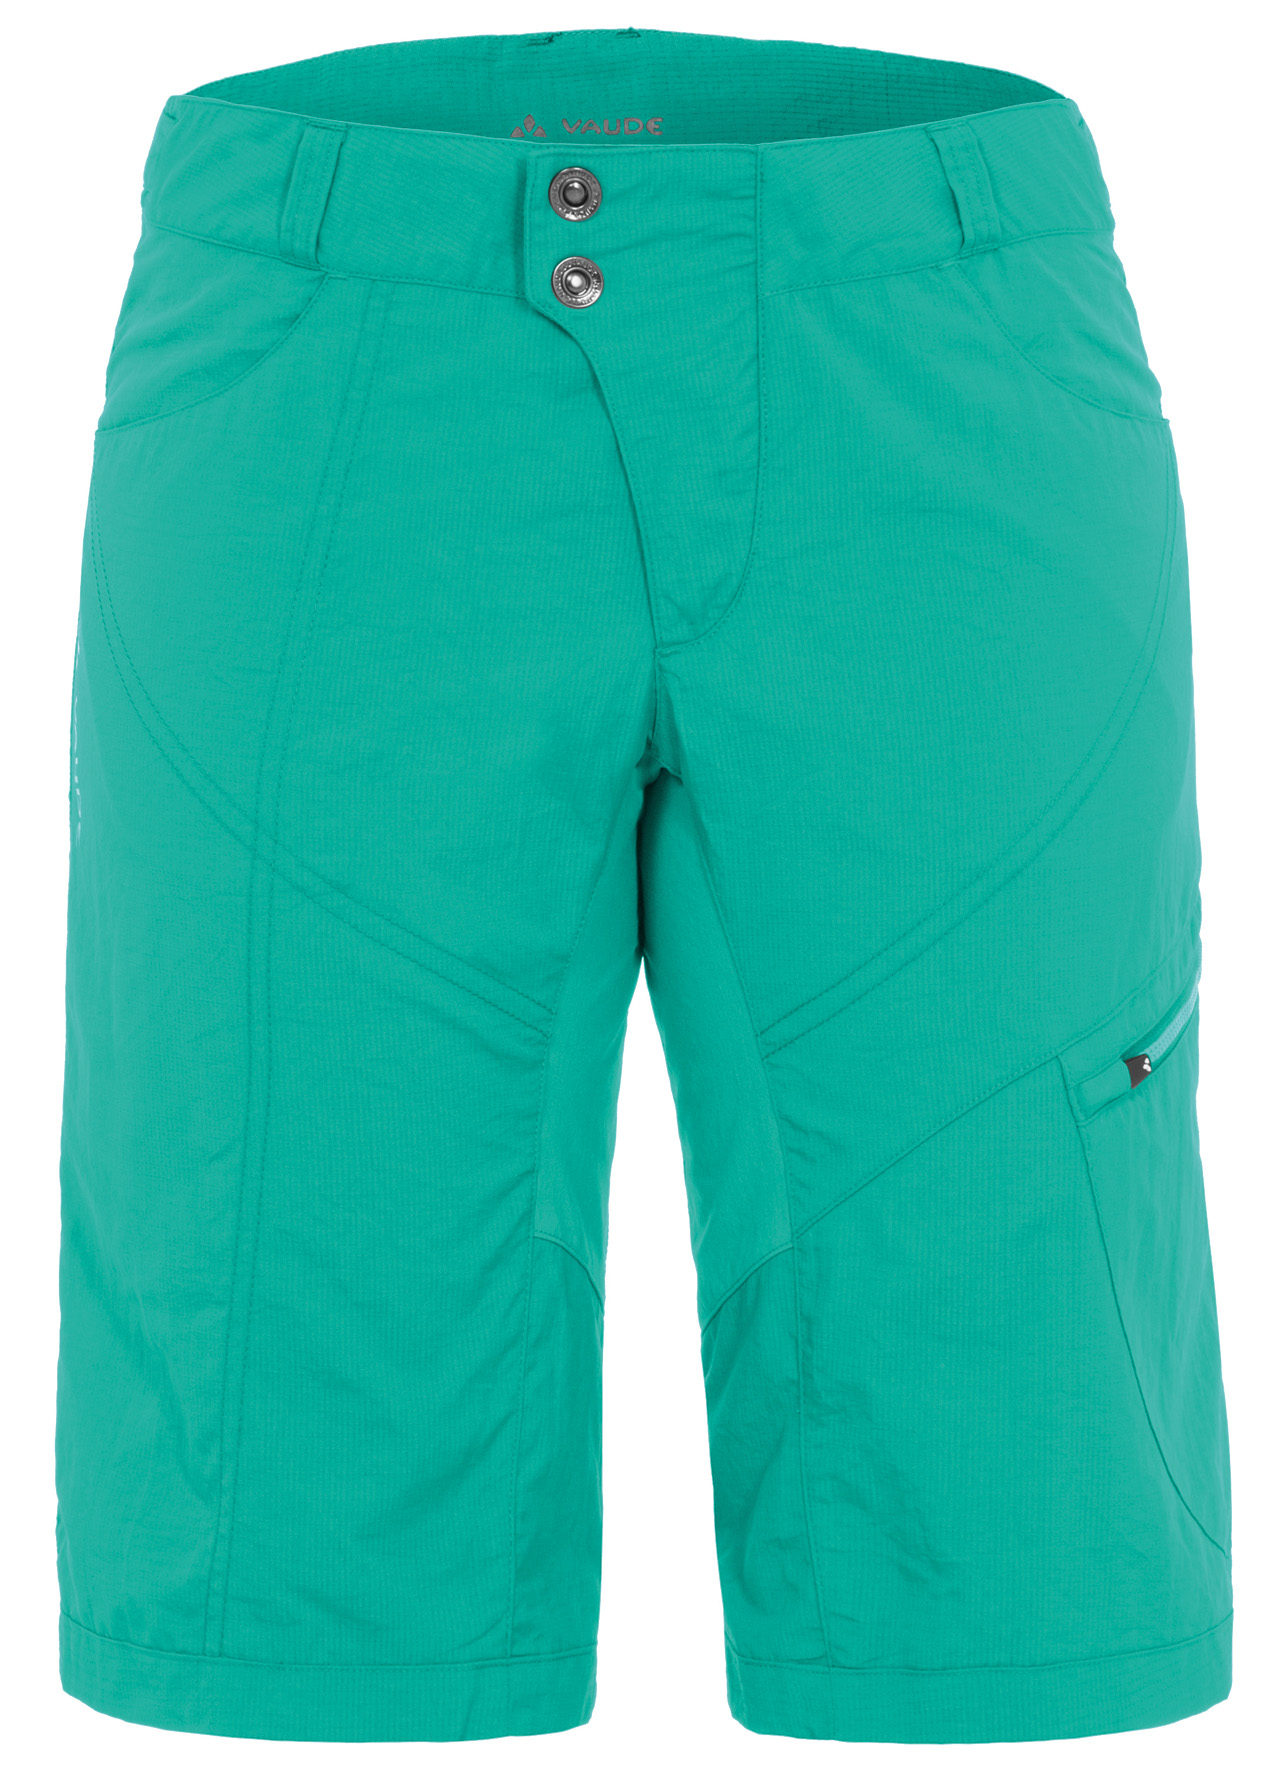 Women´s Tamaro Shorts lotus green Größe 38 - schneider-sports